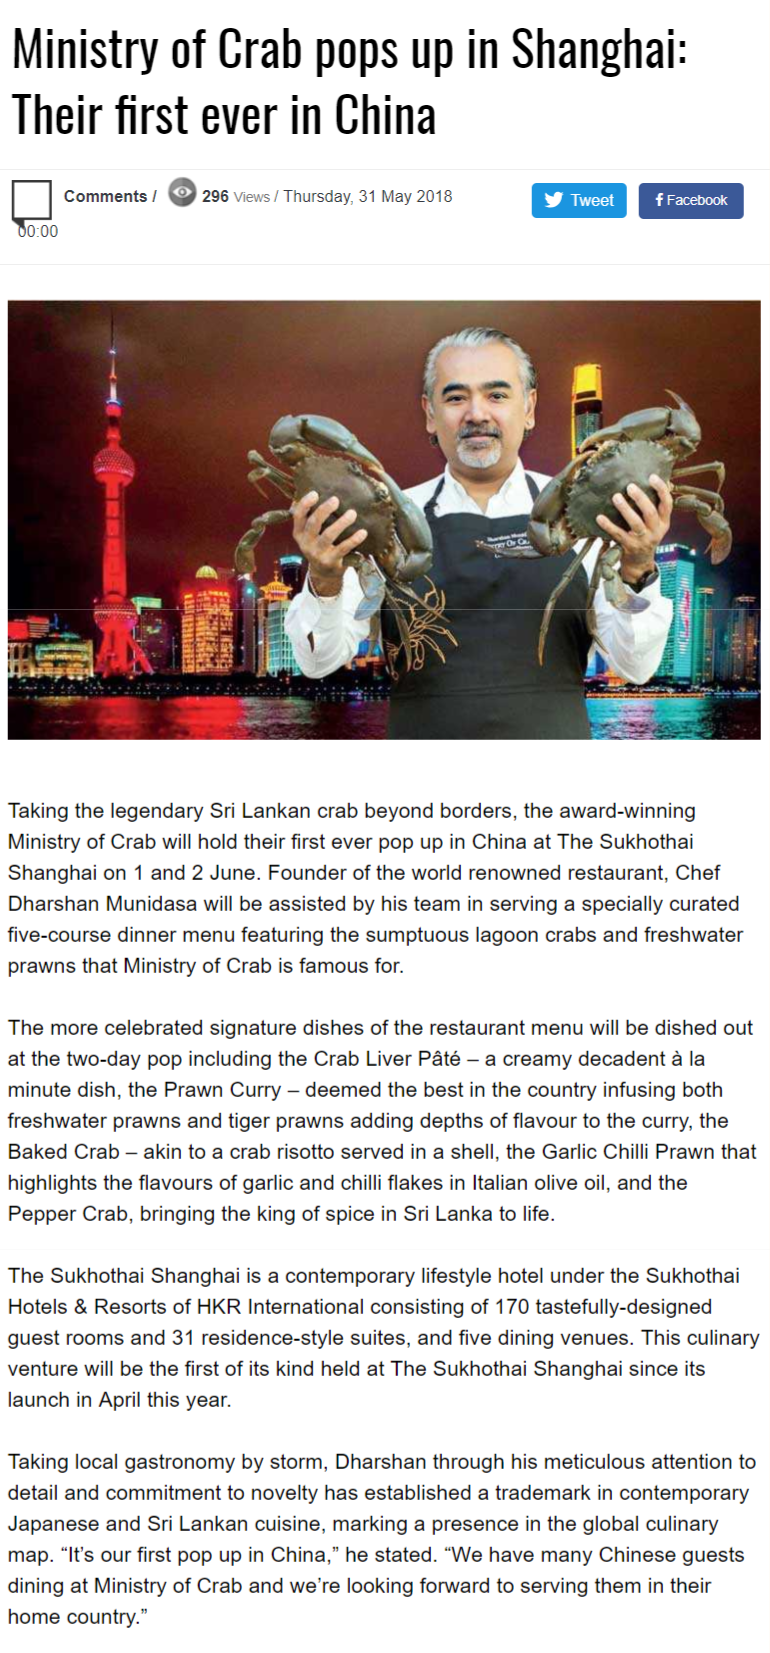 Ministry Of Crab Pops Up In Shanghai: Their First Ever In China